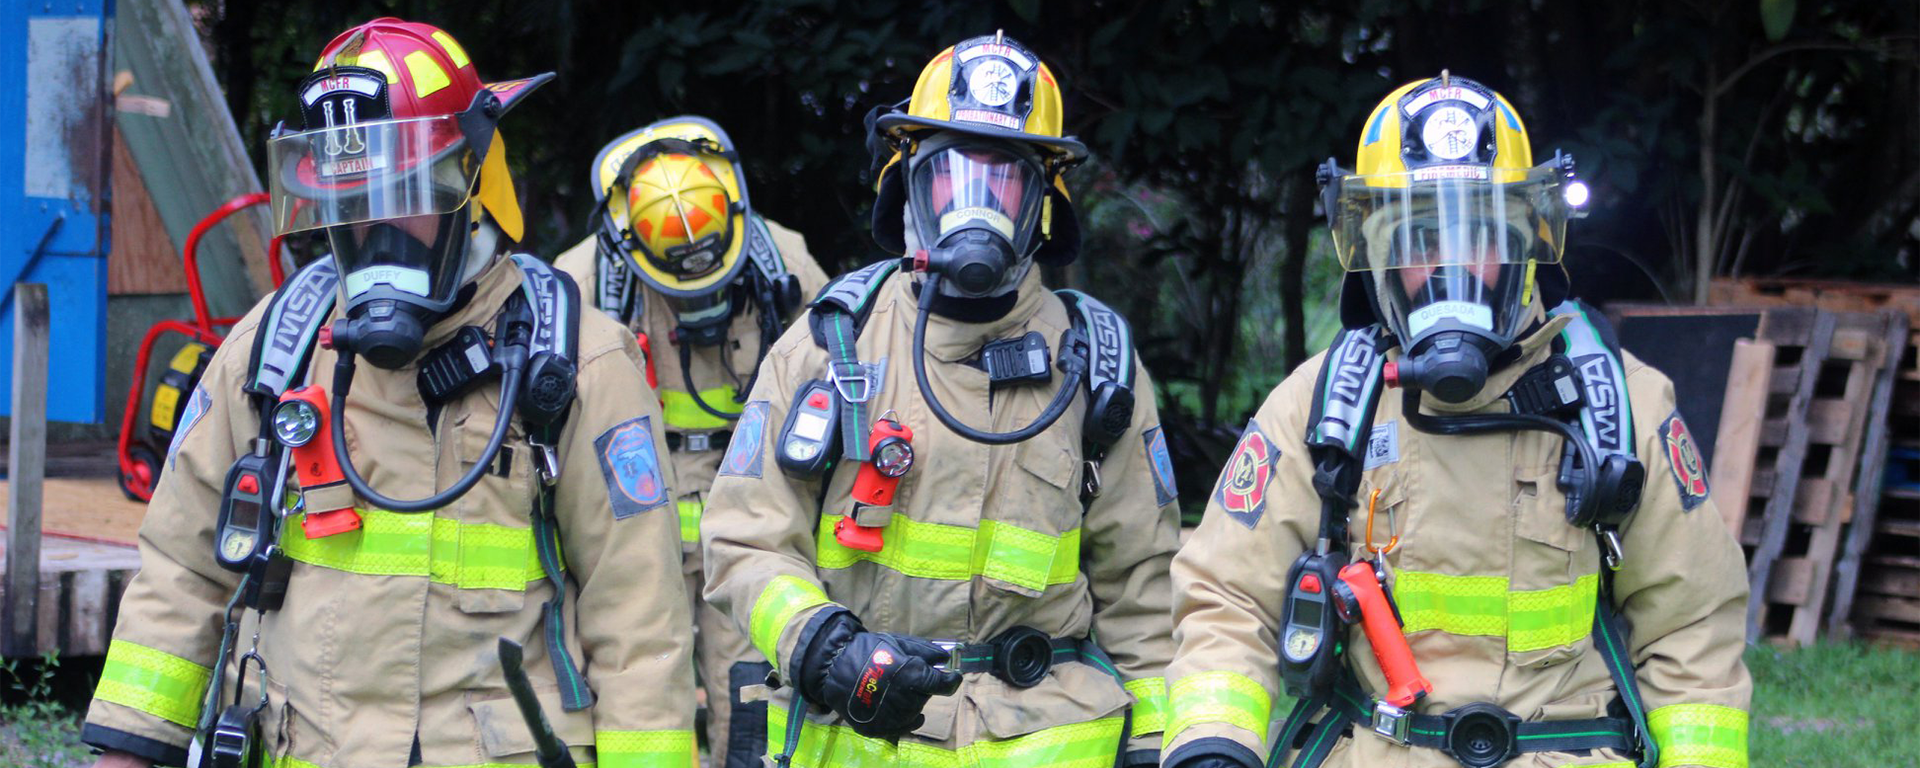 A group of firefighters walking together in protective fire gear